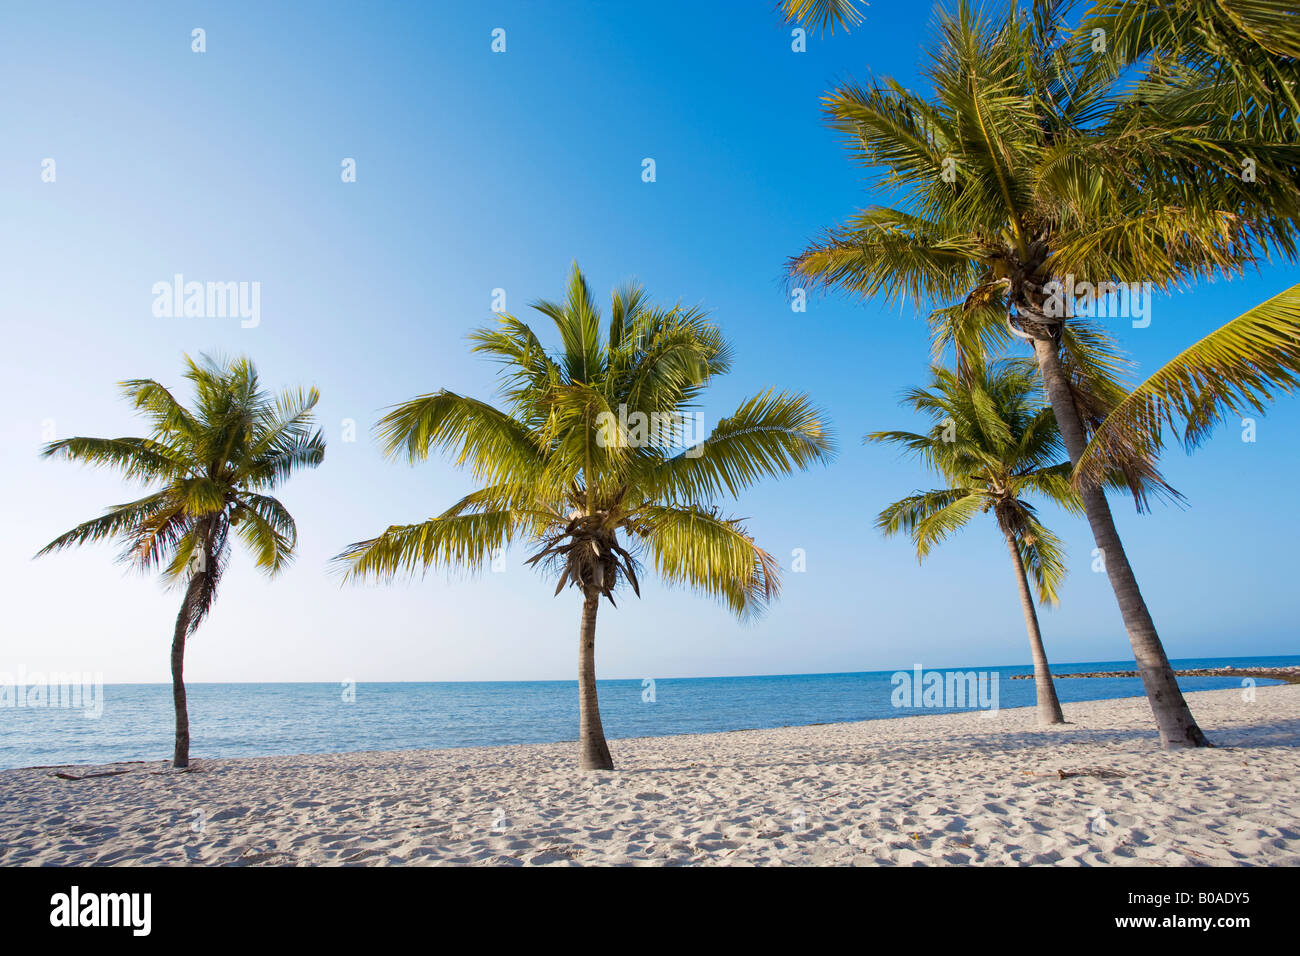 Palm trees on tropical beach in Key West, Florida, USA - Stock Image